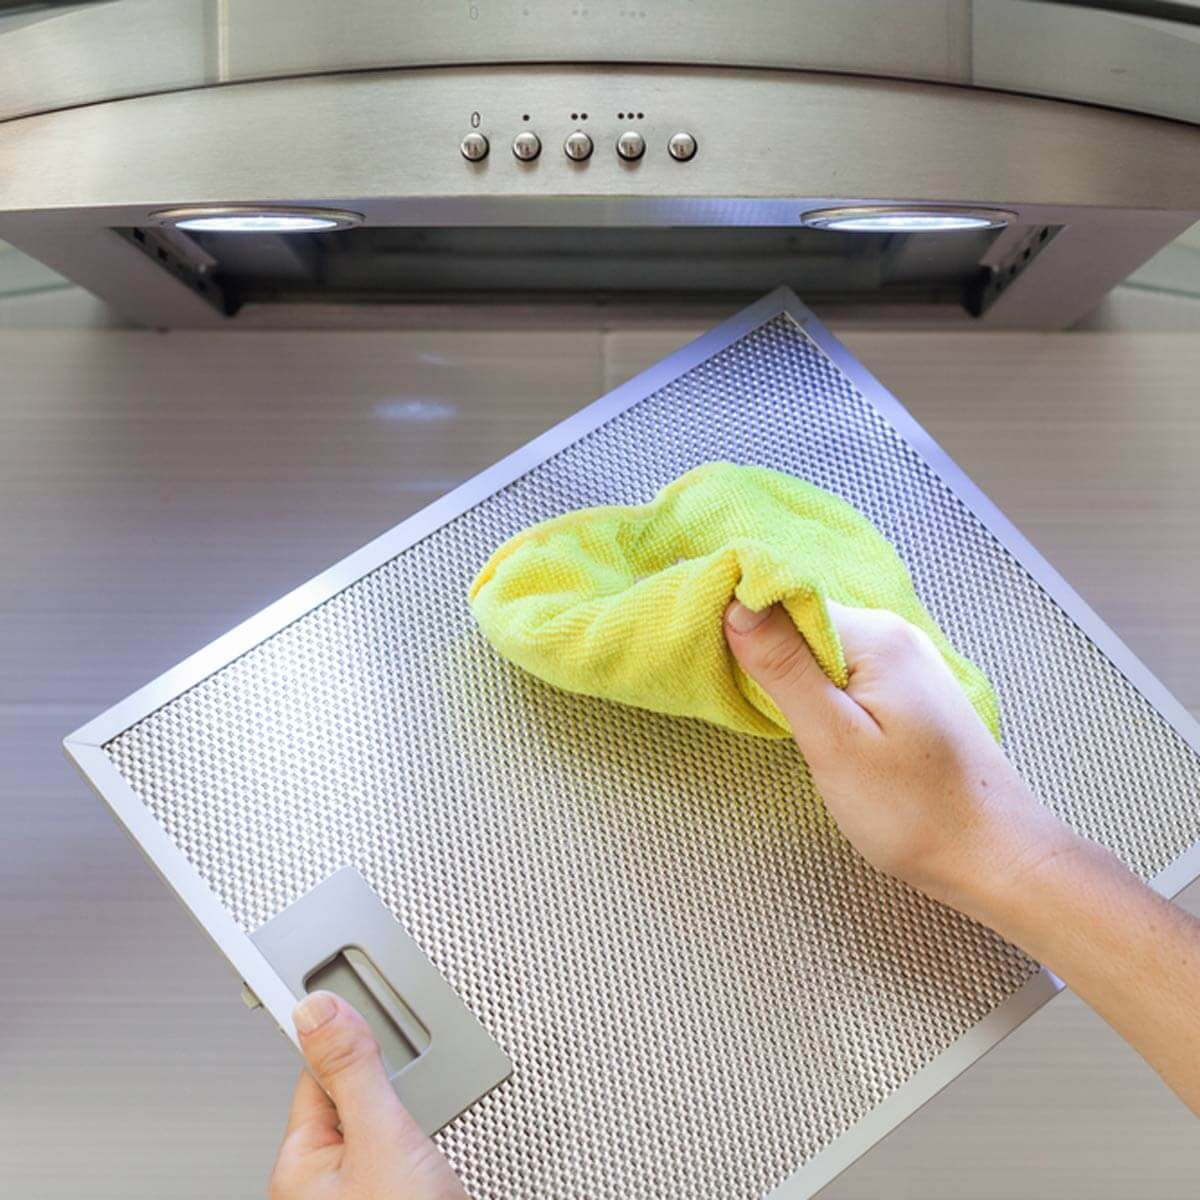 Clean your stove's vent